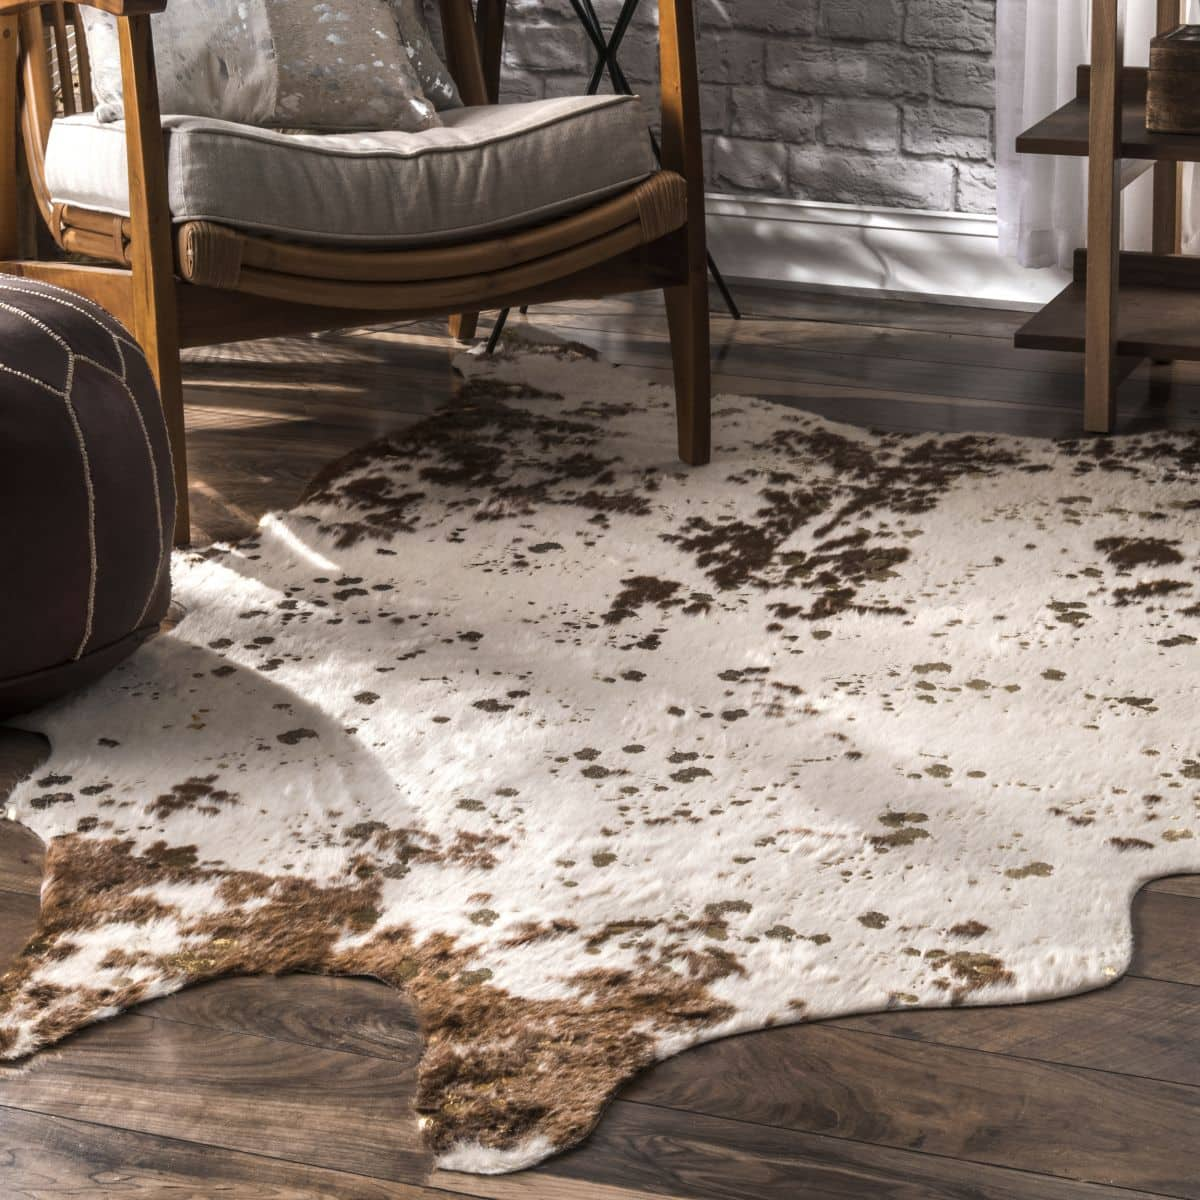 Get a Rustic Look With a Faux Cowhide Rug